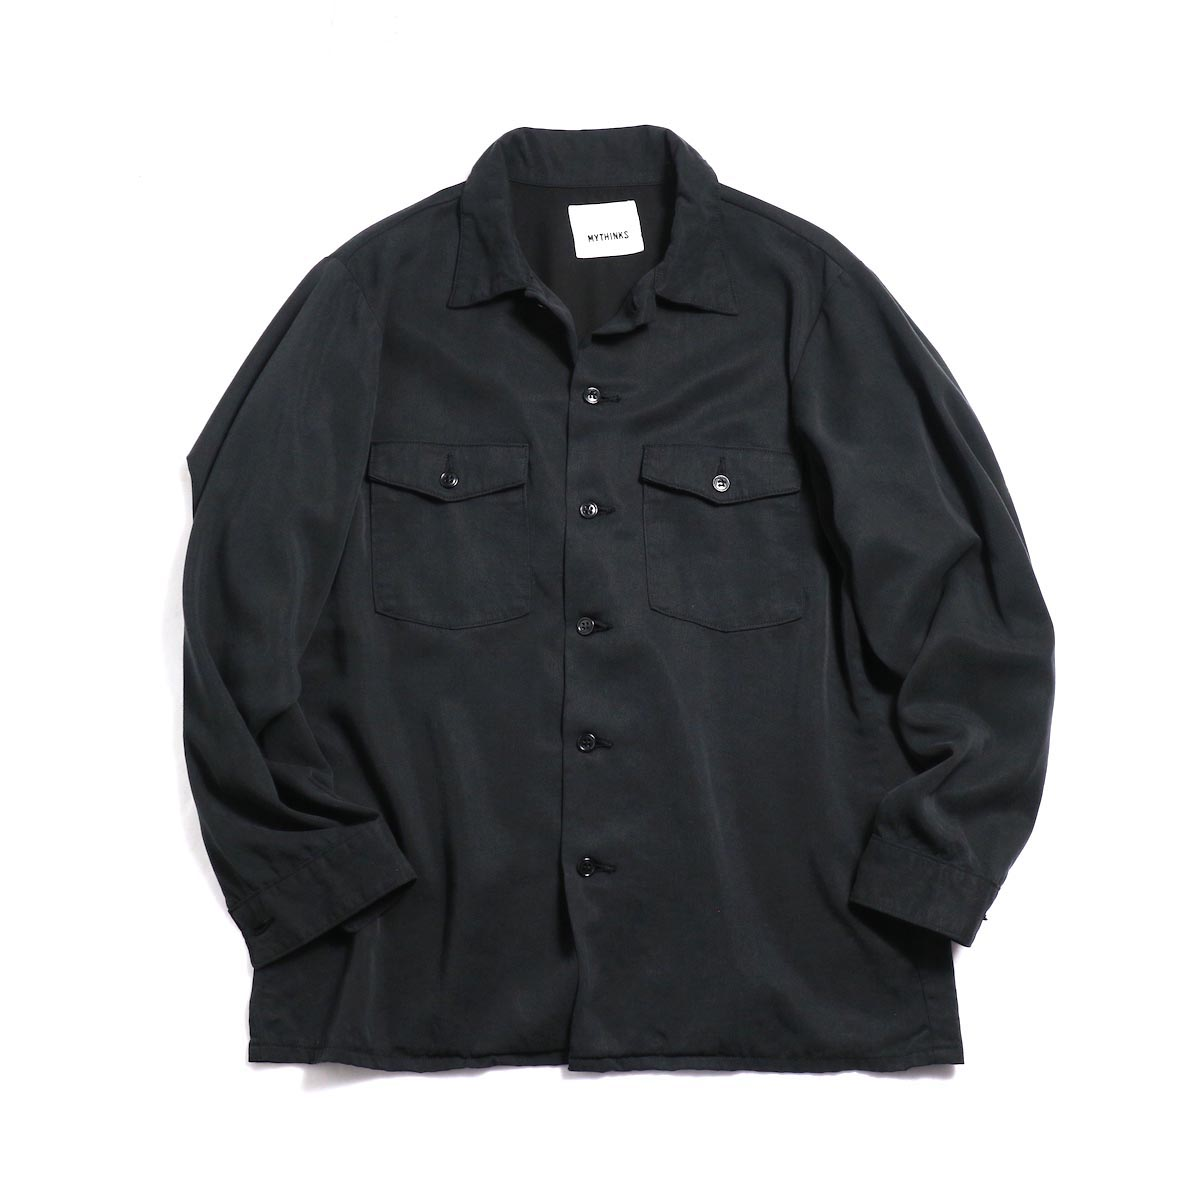 MYTHINKS (Men's) / MY Tencel Army Shirt -Black